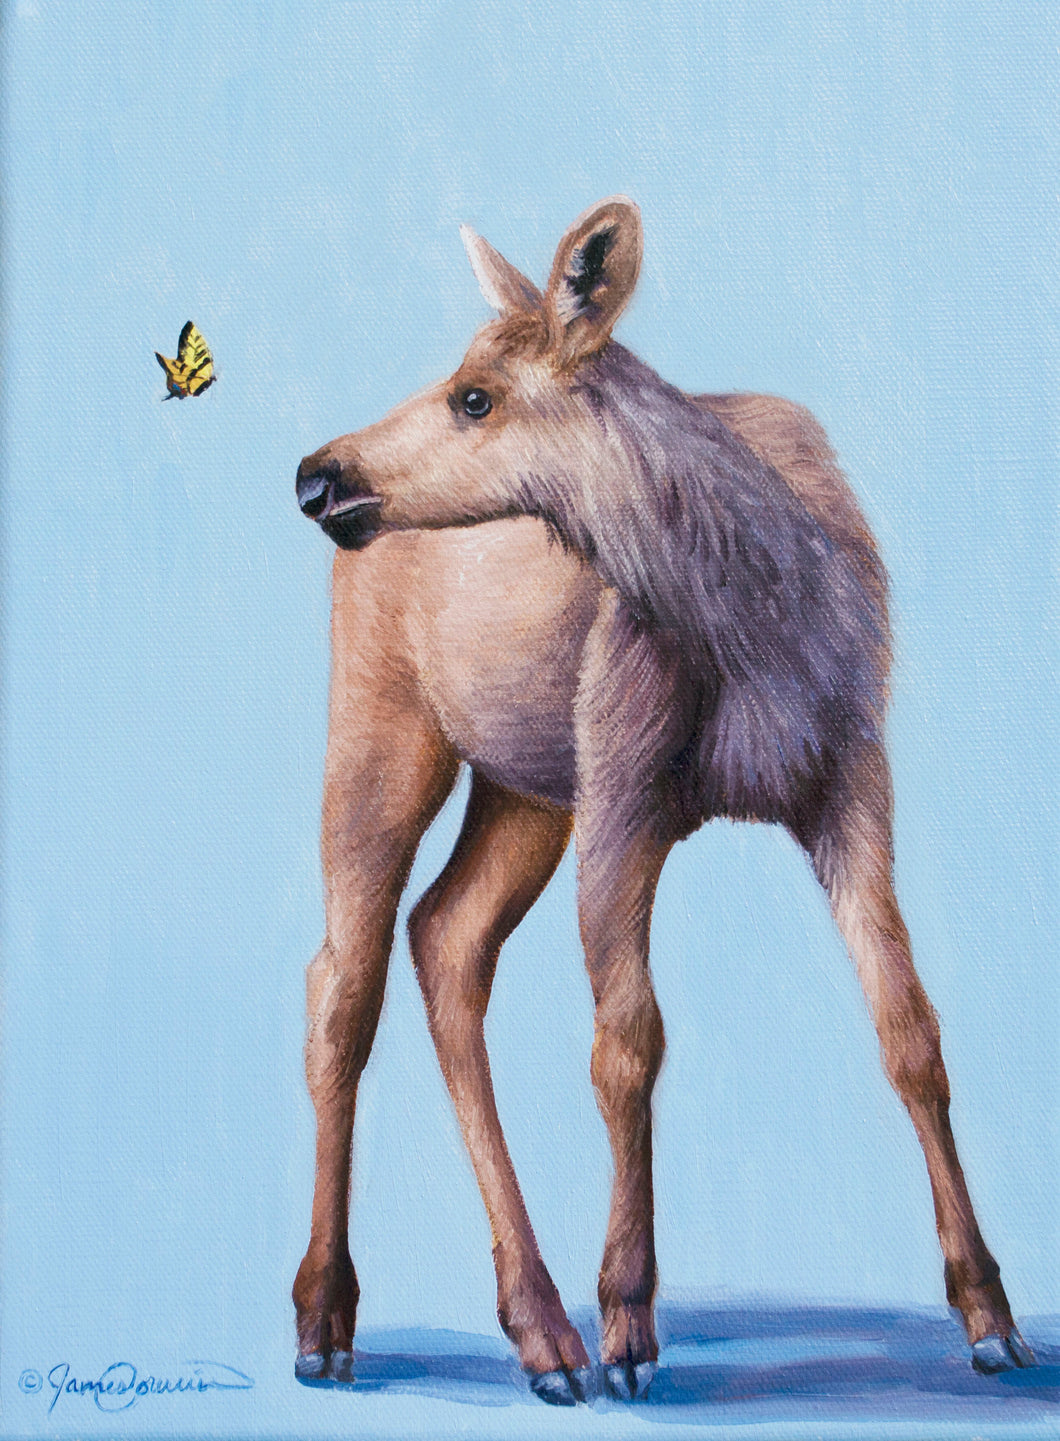 Baby Moose and Butterfly